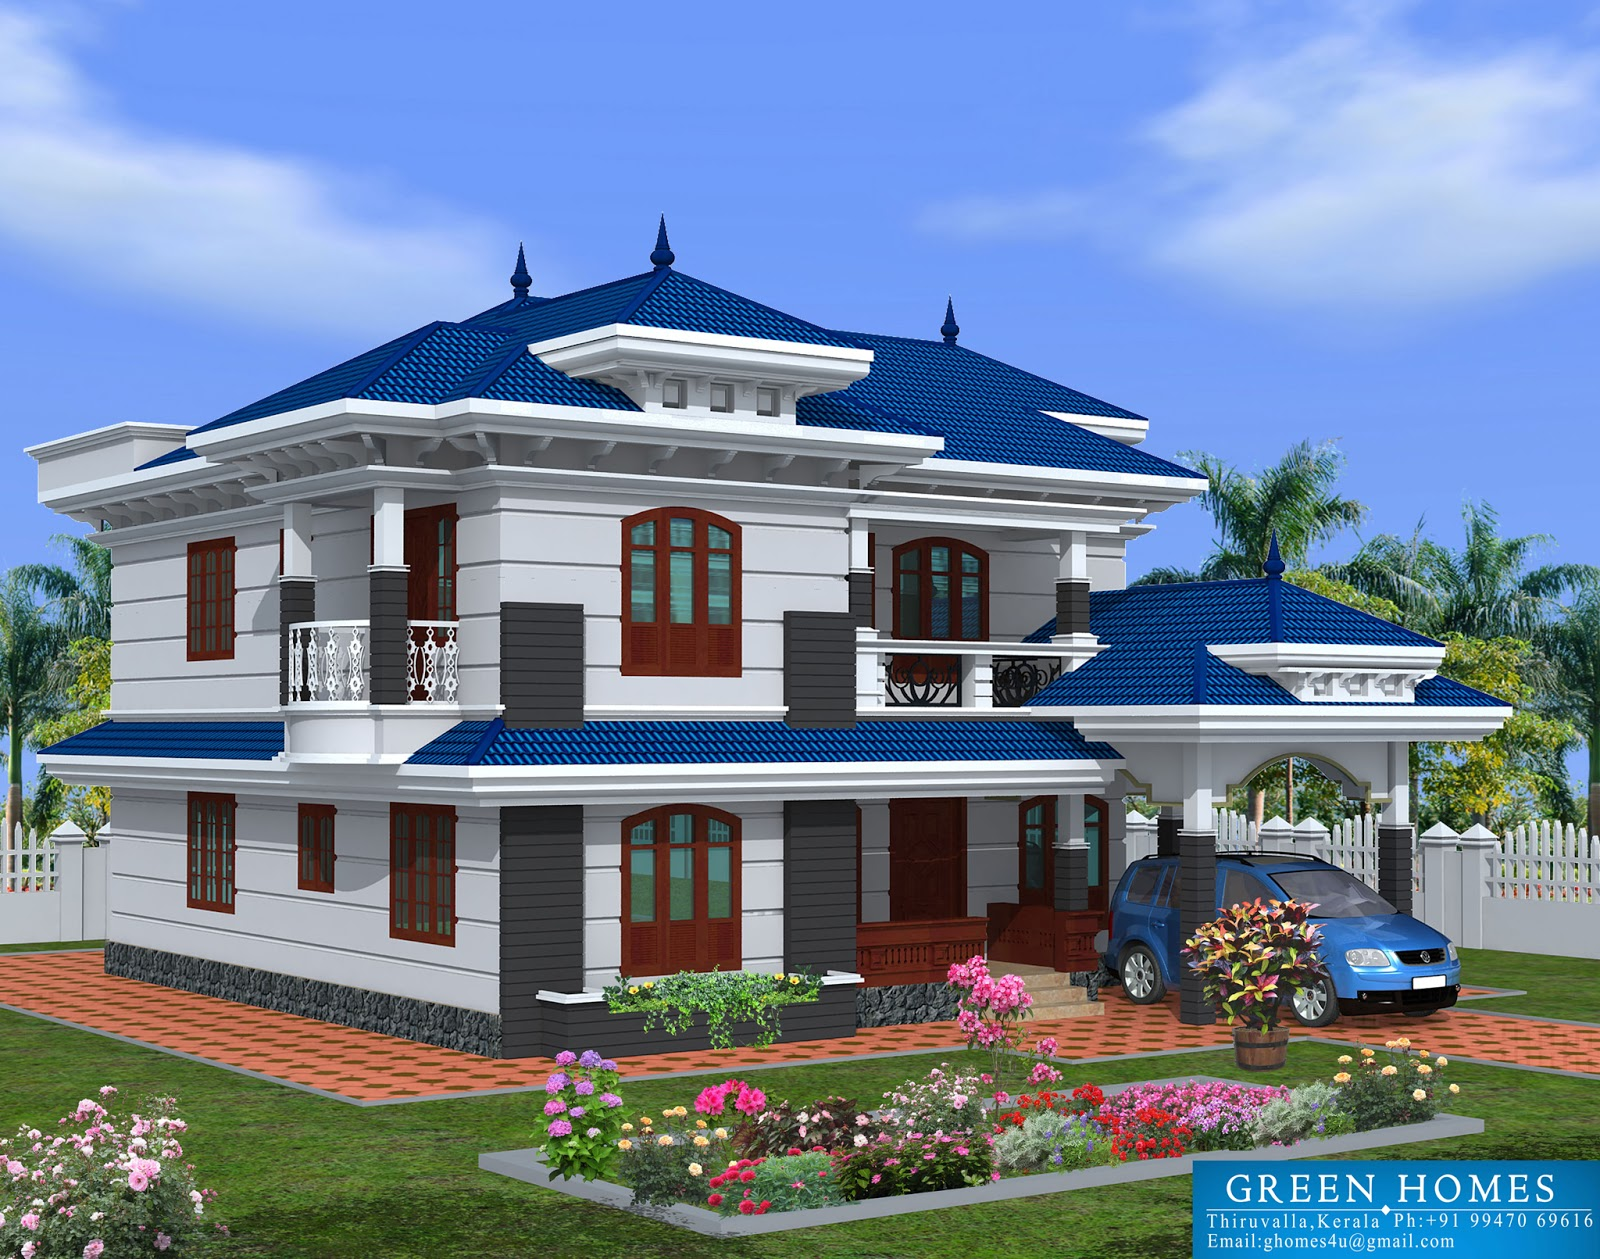 Green homes beautiful kerala home design for New houses in kerala